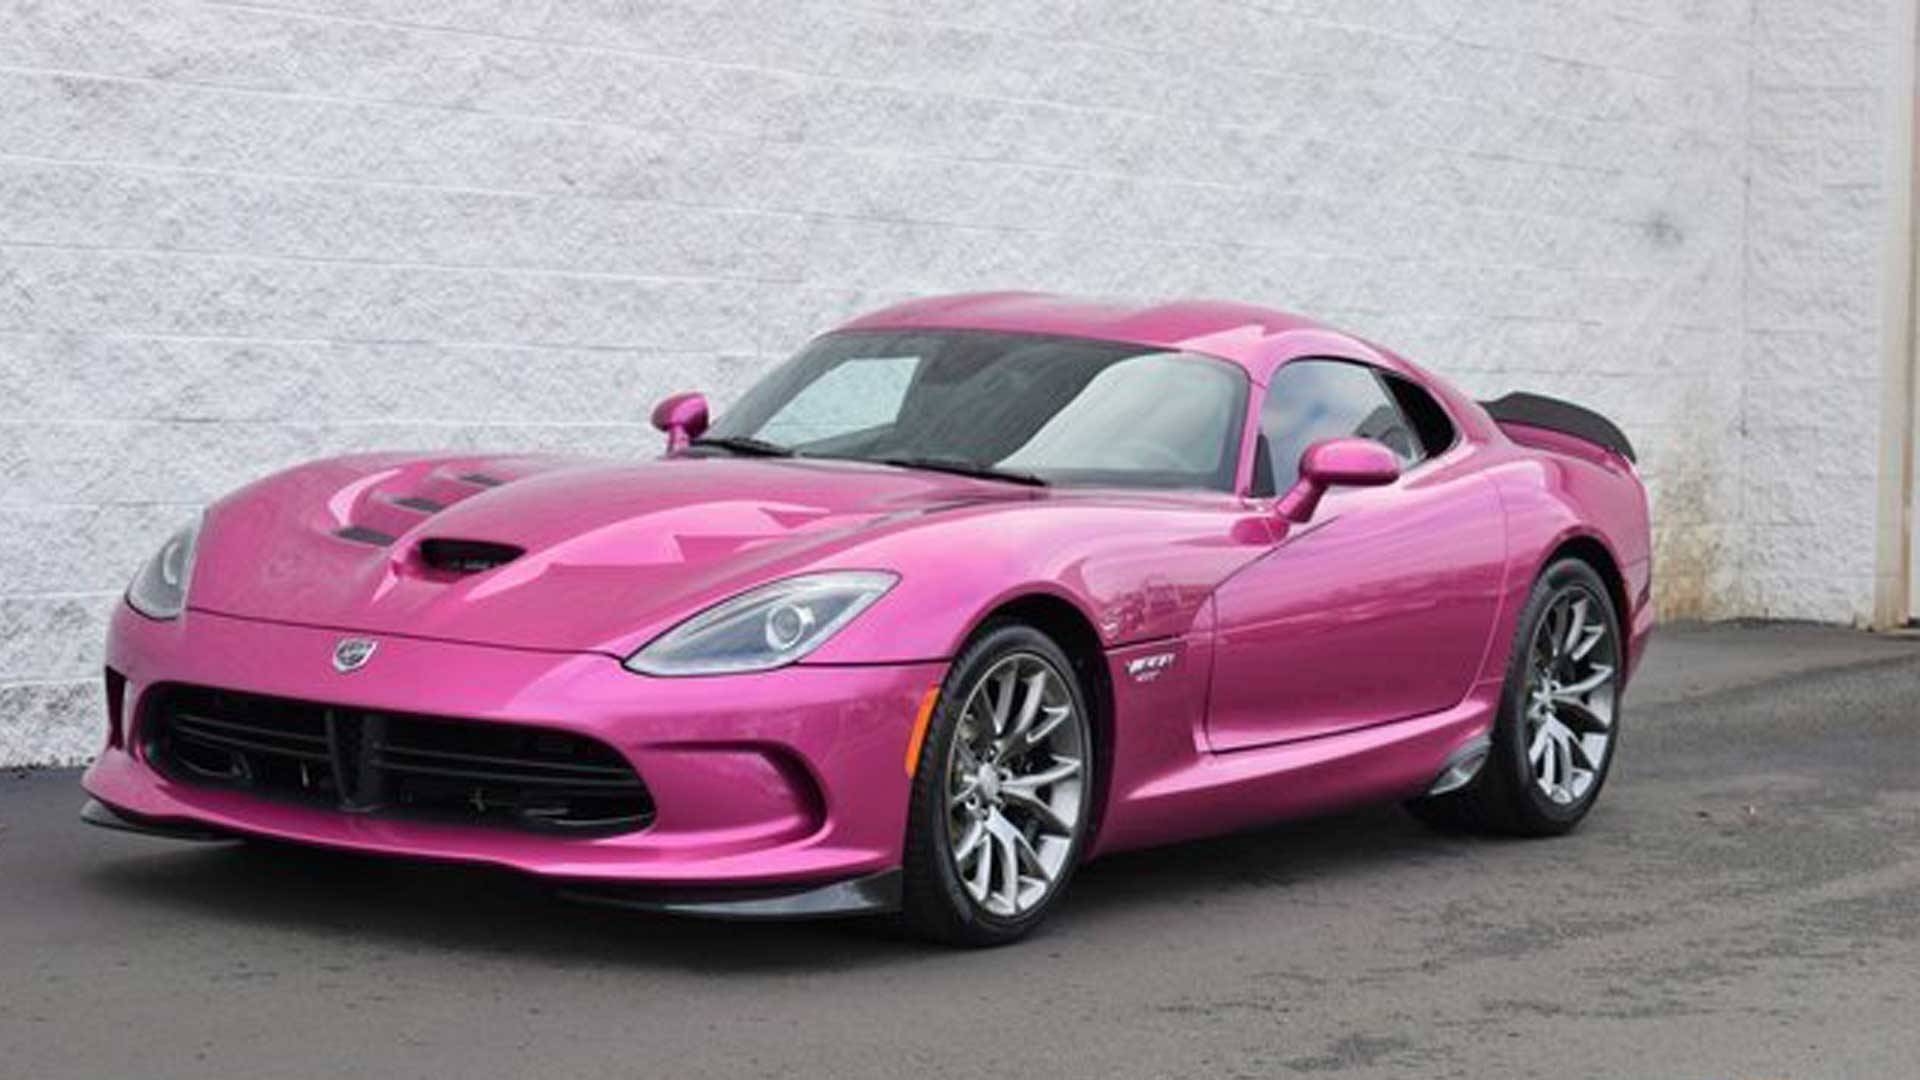 Dodge viper wears factory metallic pink paint selling for 155k publicscrutiny Choice Image